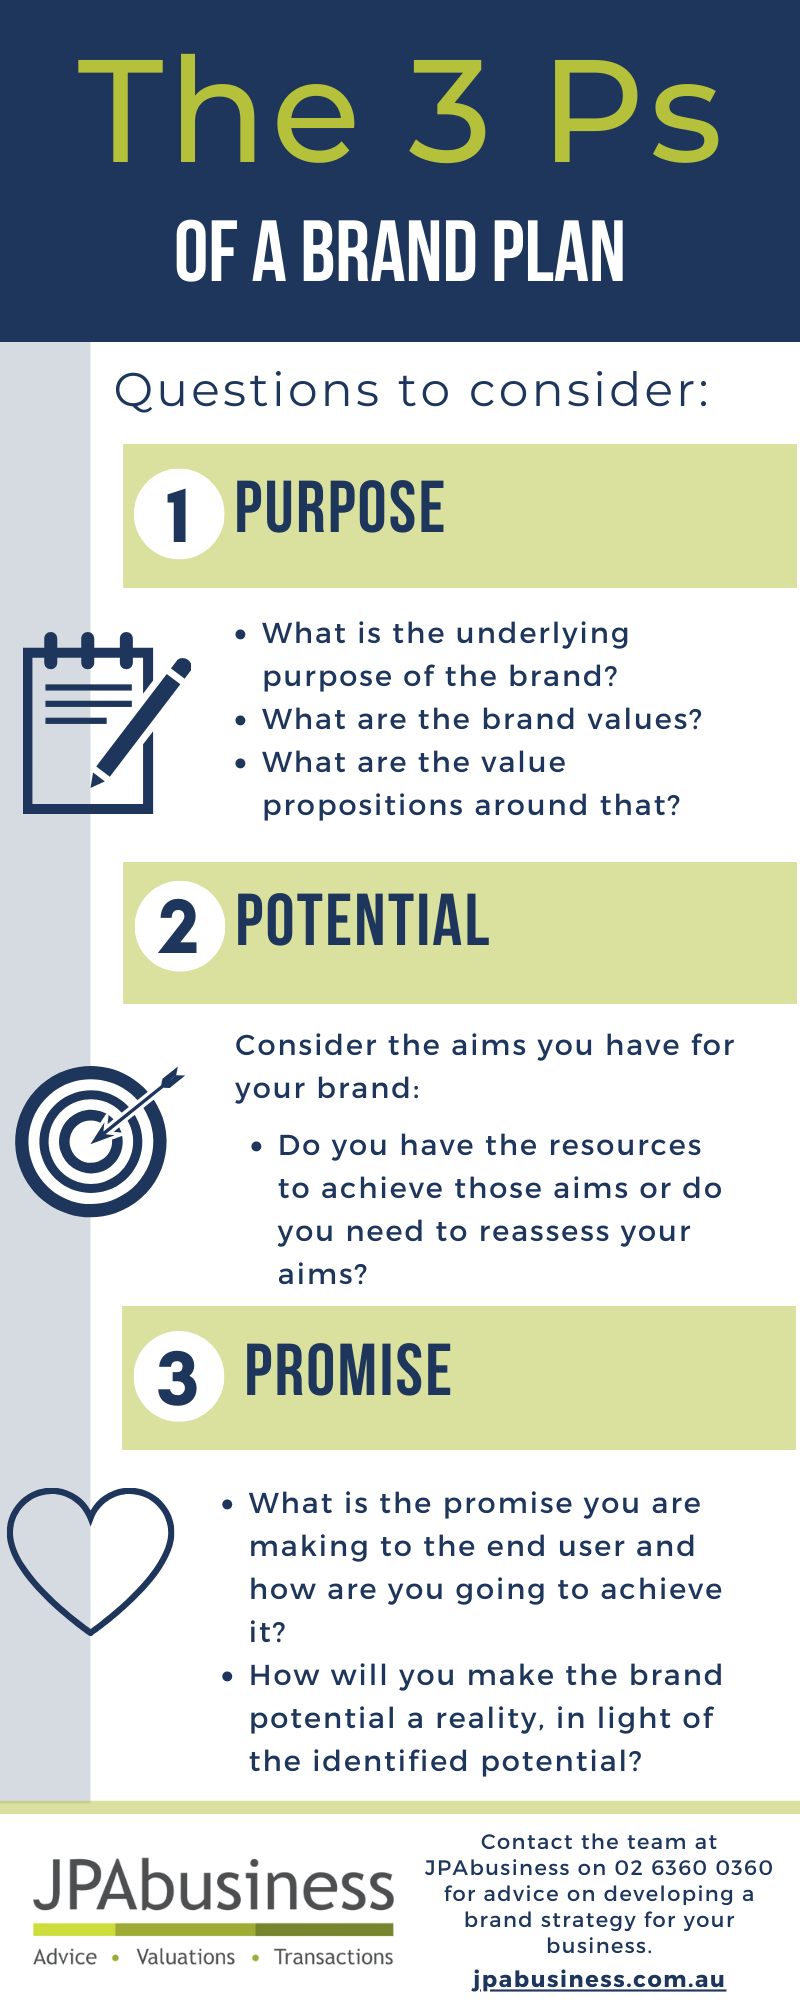 3 Ps of a brand plan